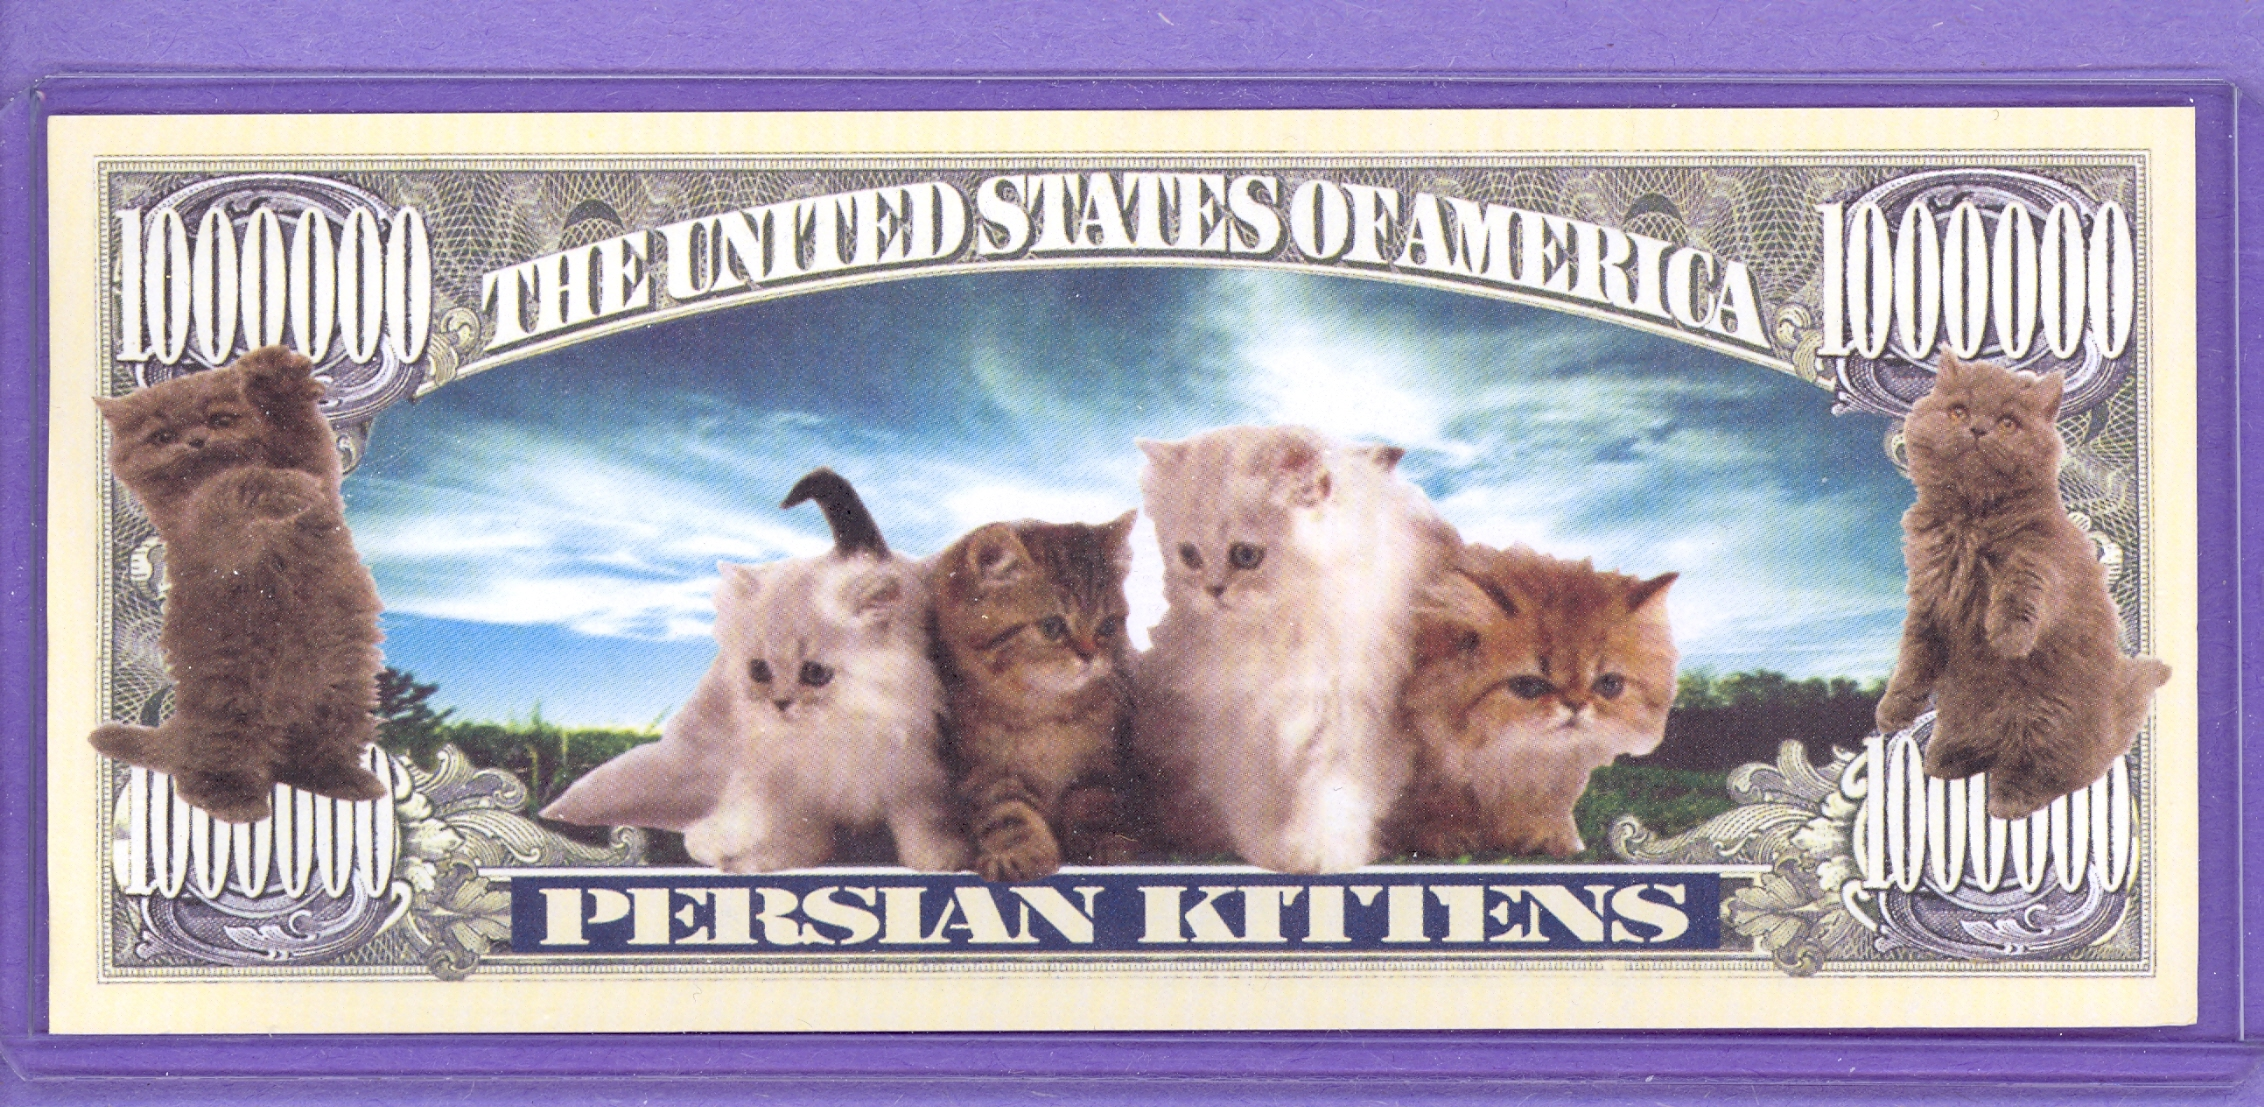 Persian Kittens $1,000,000 Novelty Note